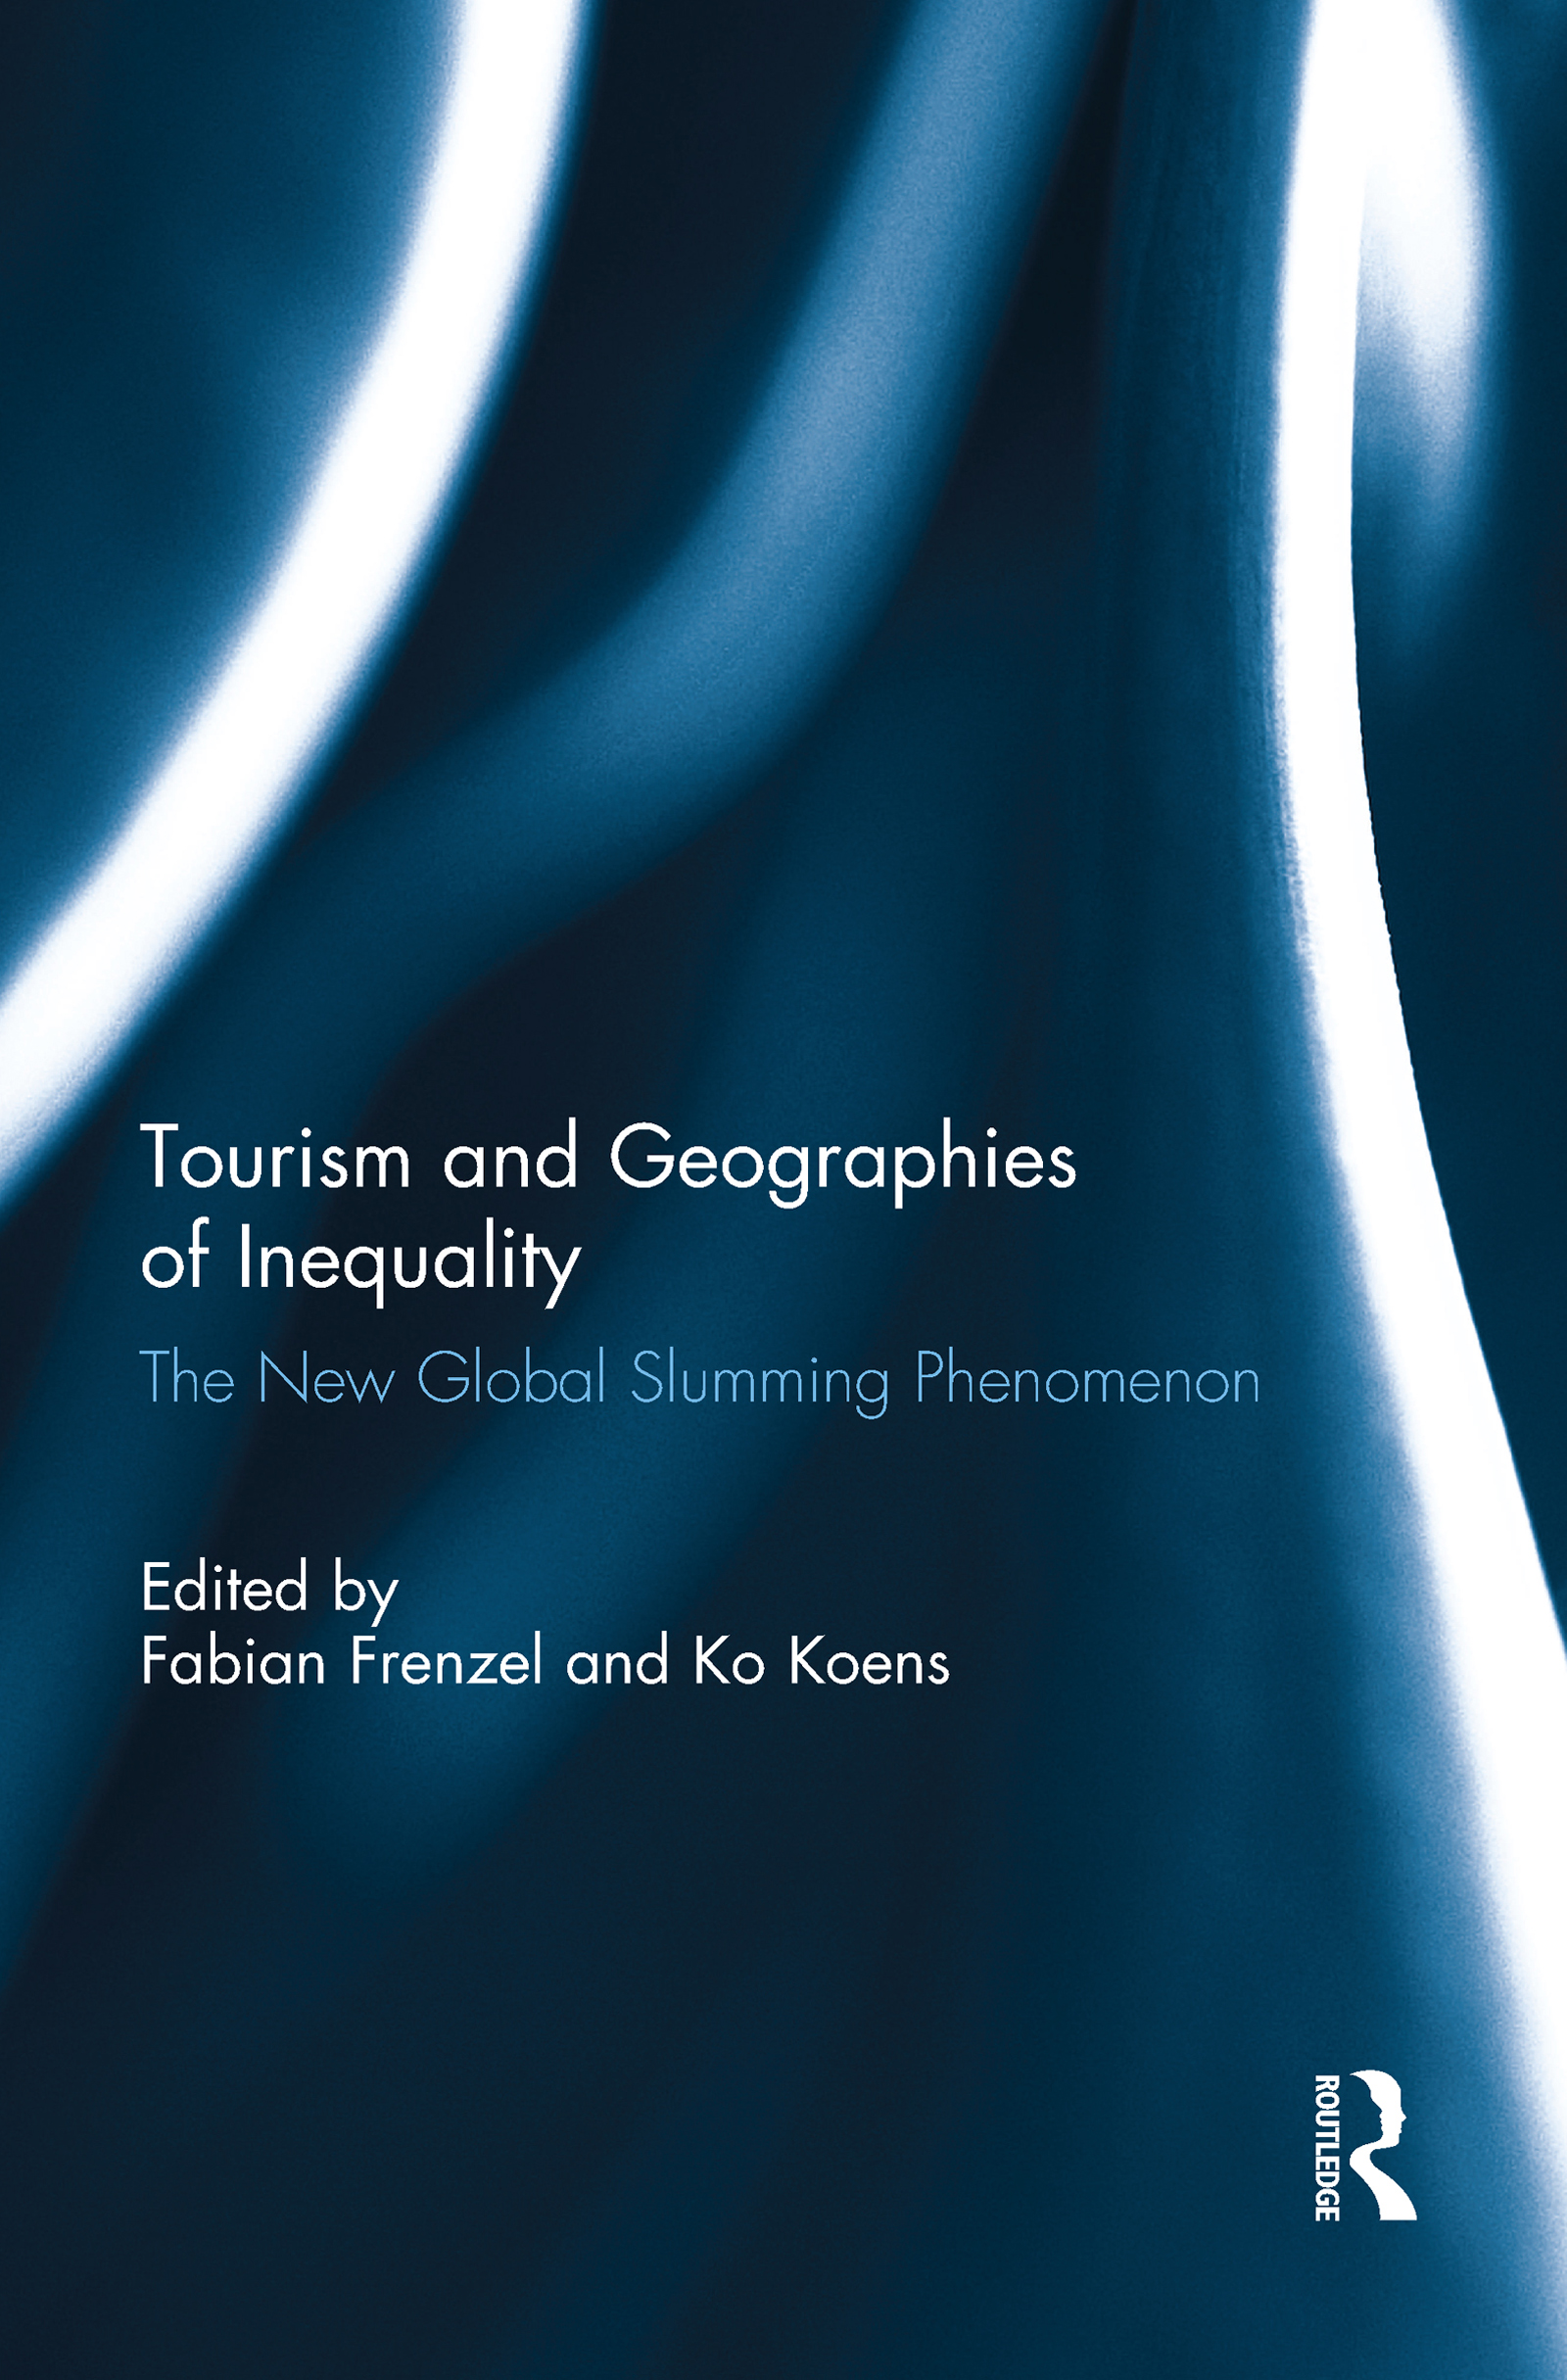 Tourism and Geographies of Inequality